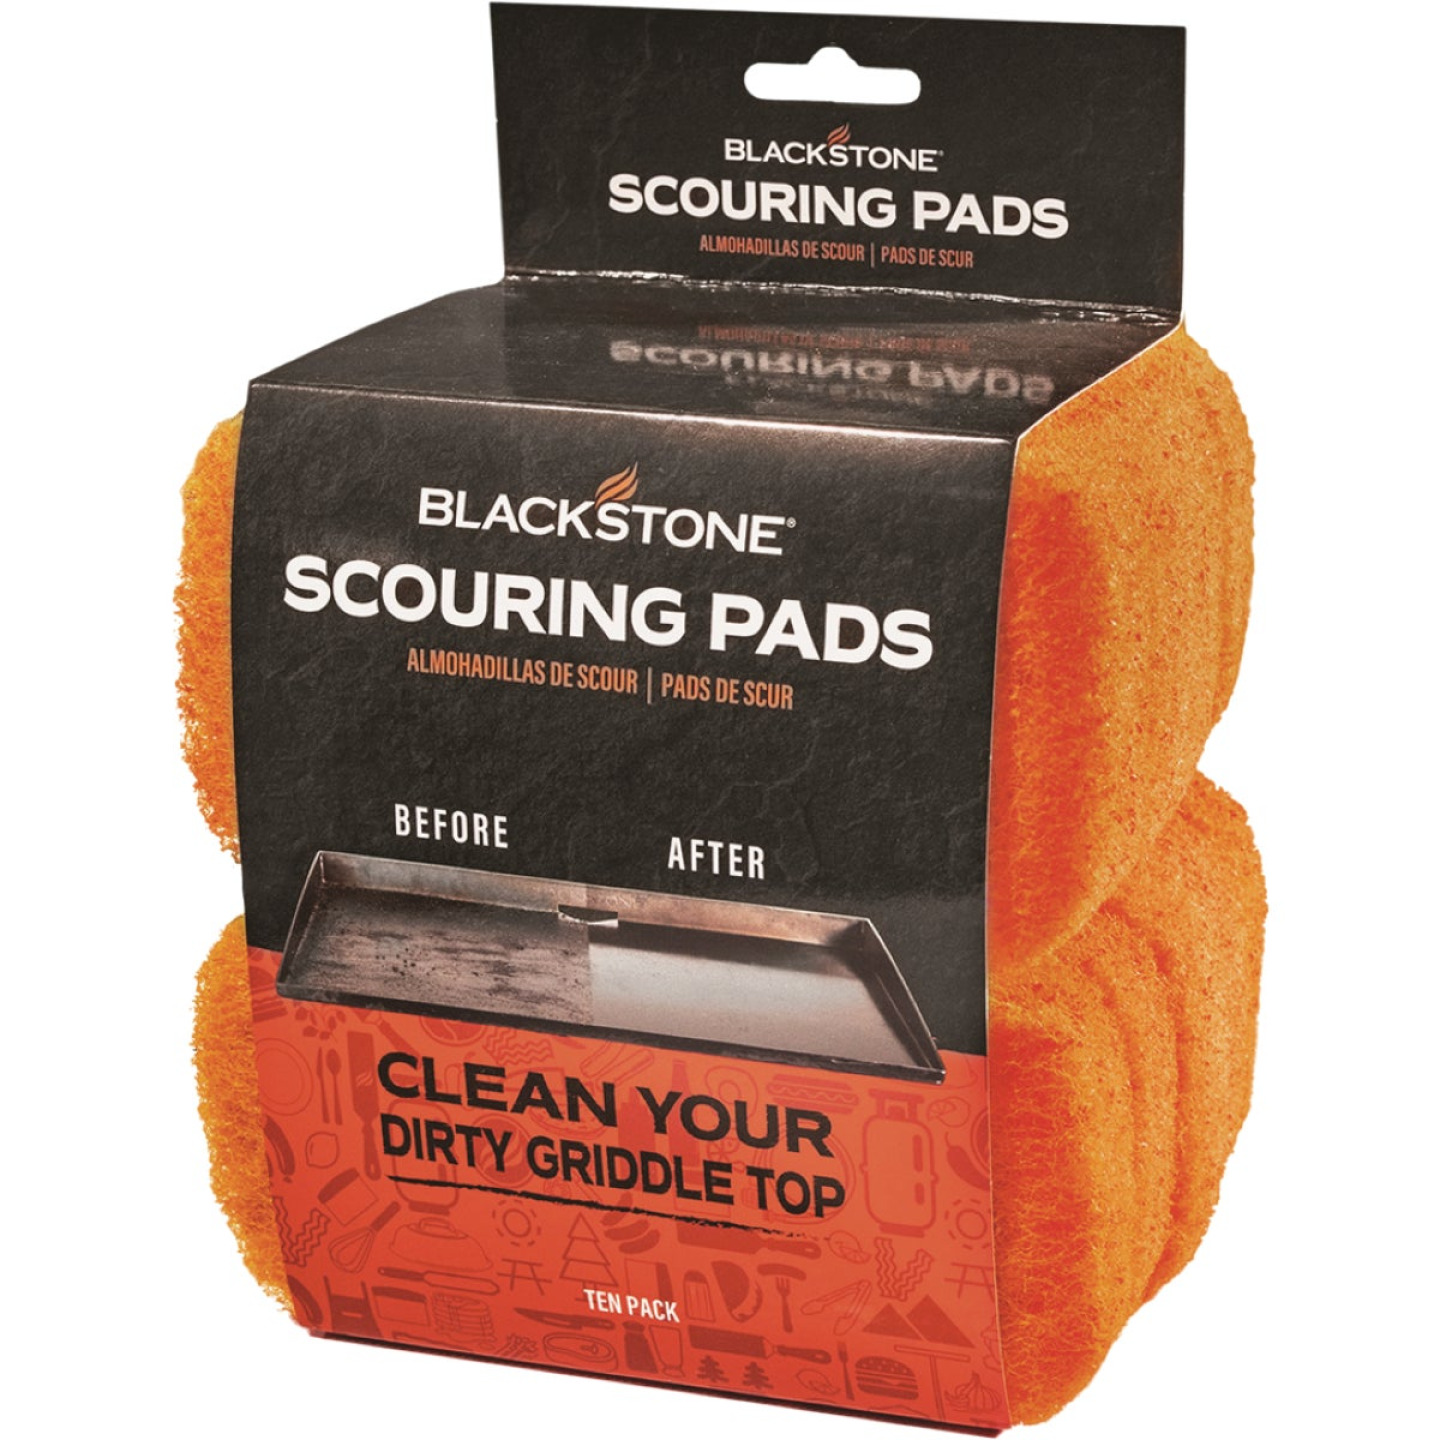 Blackstone 3 In. Nylon Fiber Griddle Cleaning Pad (10-Count) Image 1